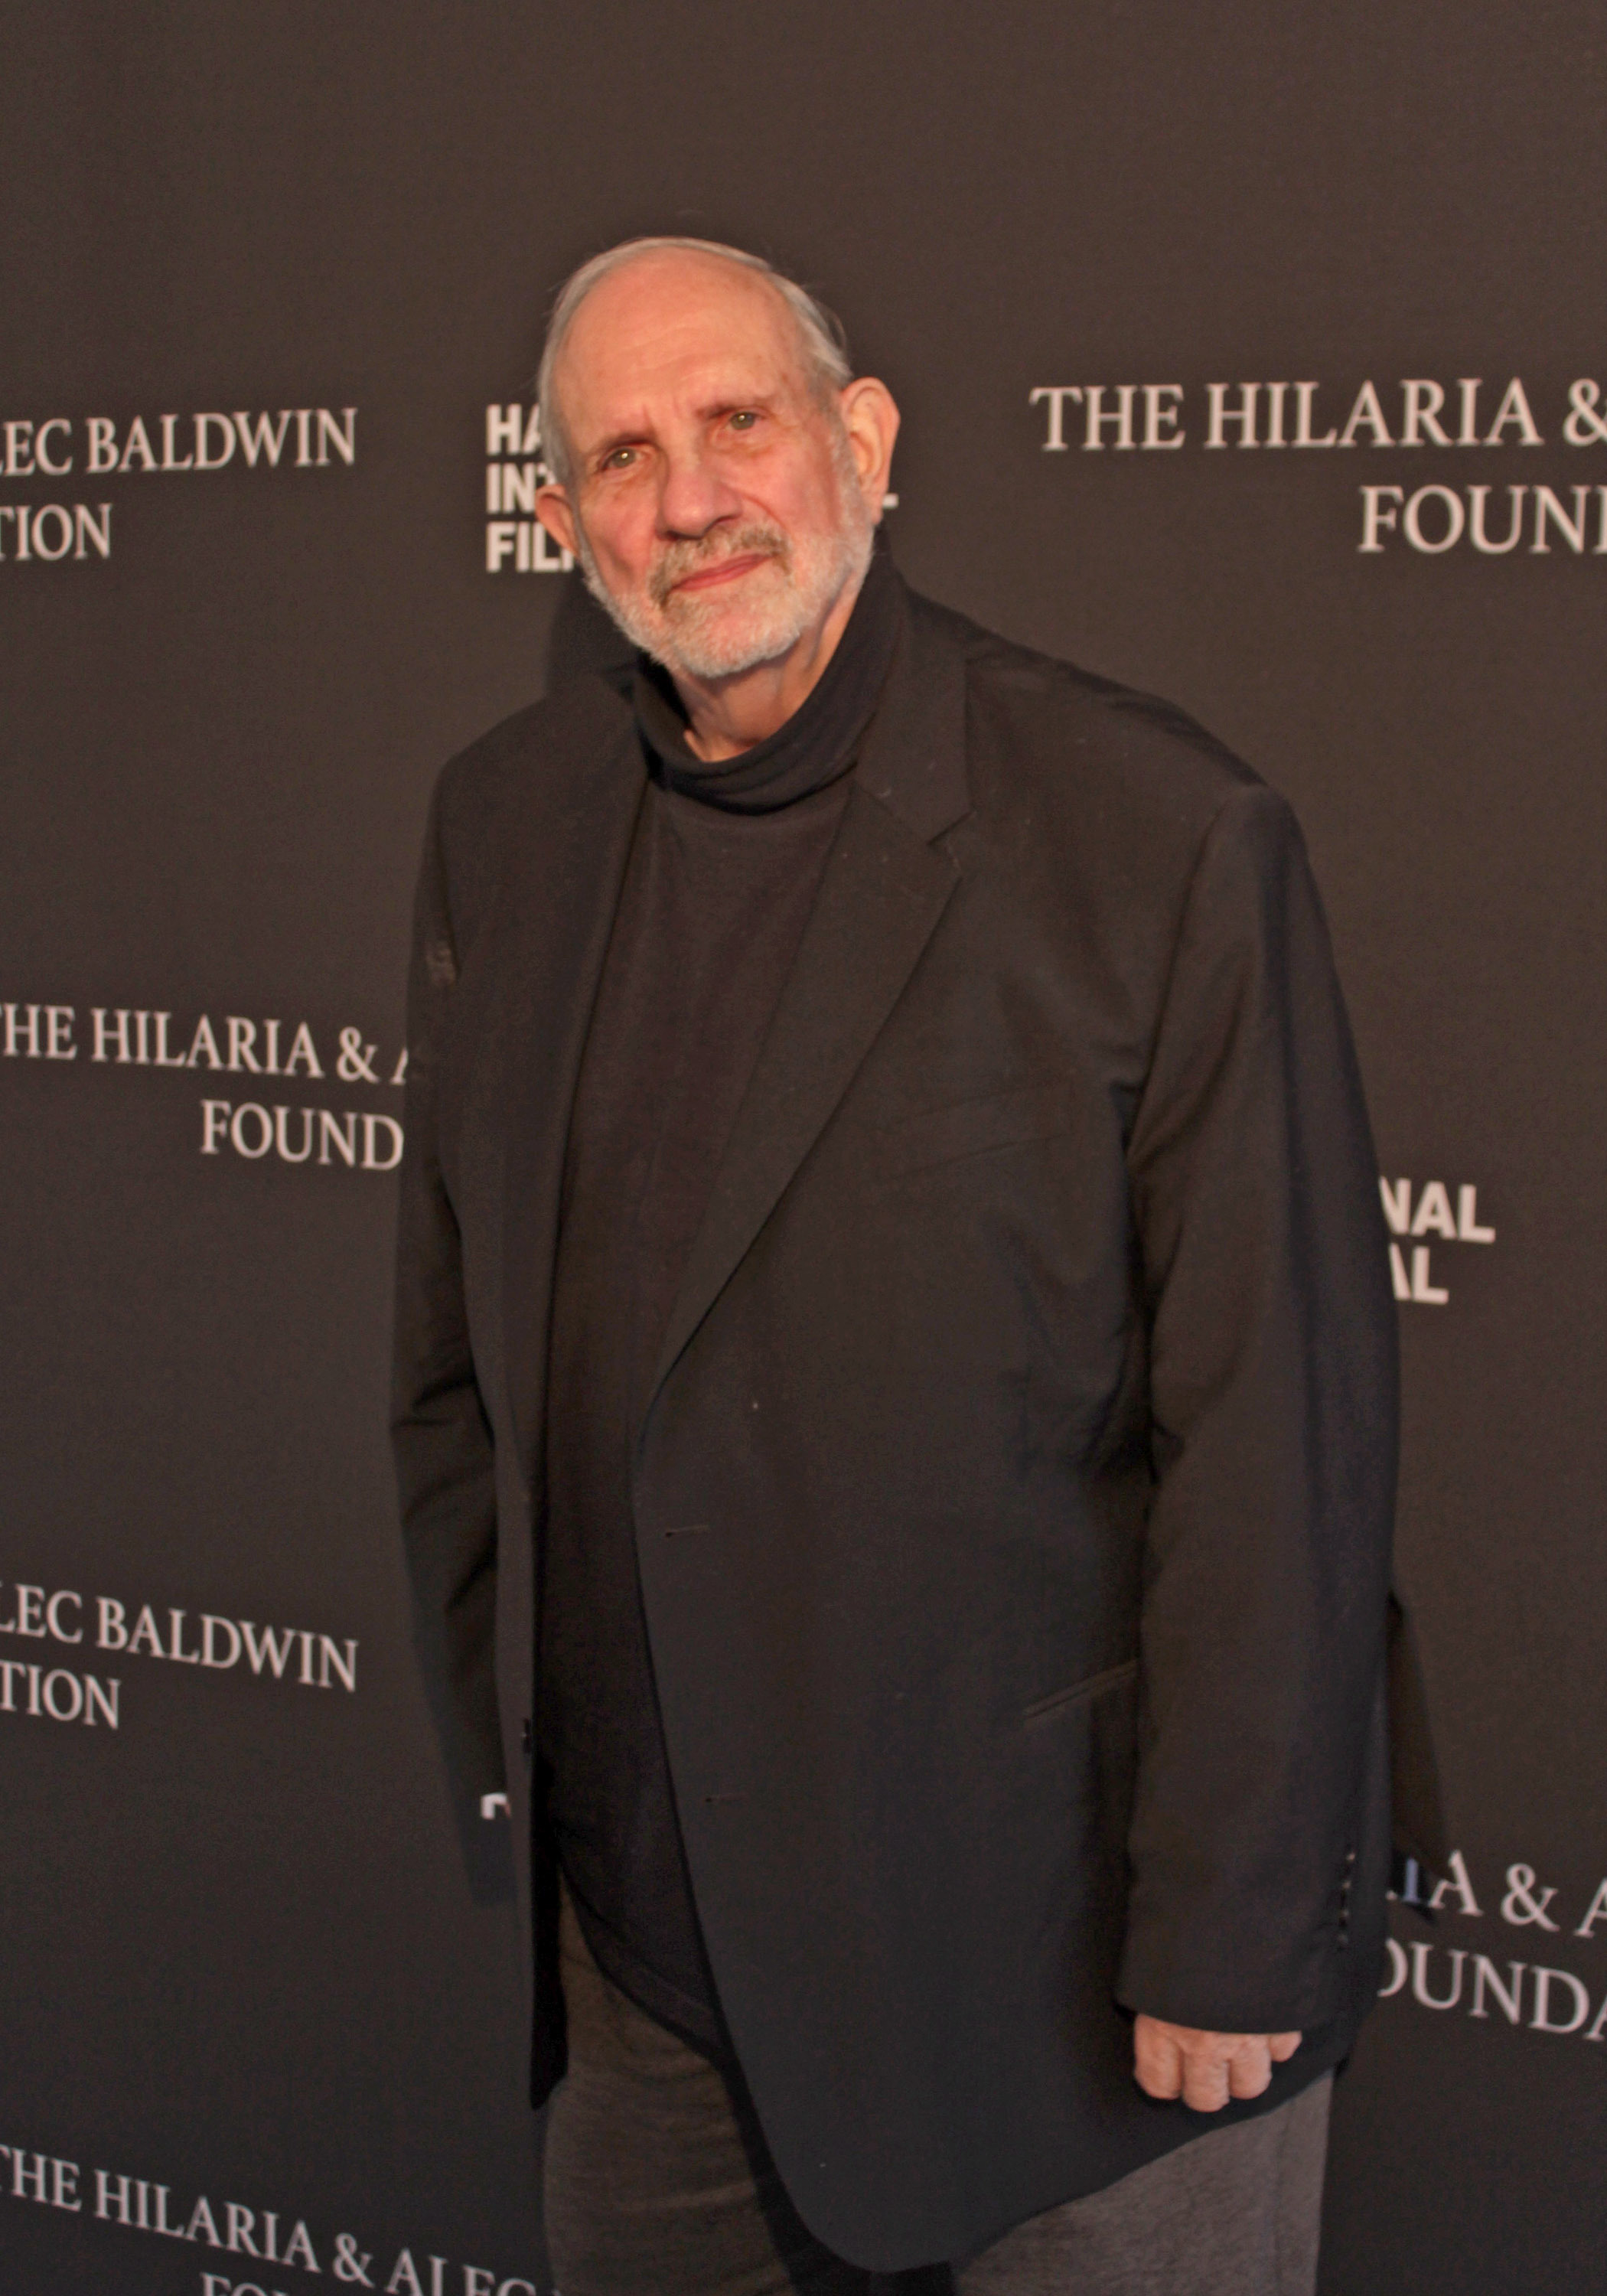 Filmmaker Brian De Palma who was honored at the 2019 Hamptons International Film Festival.